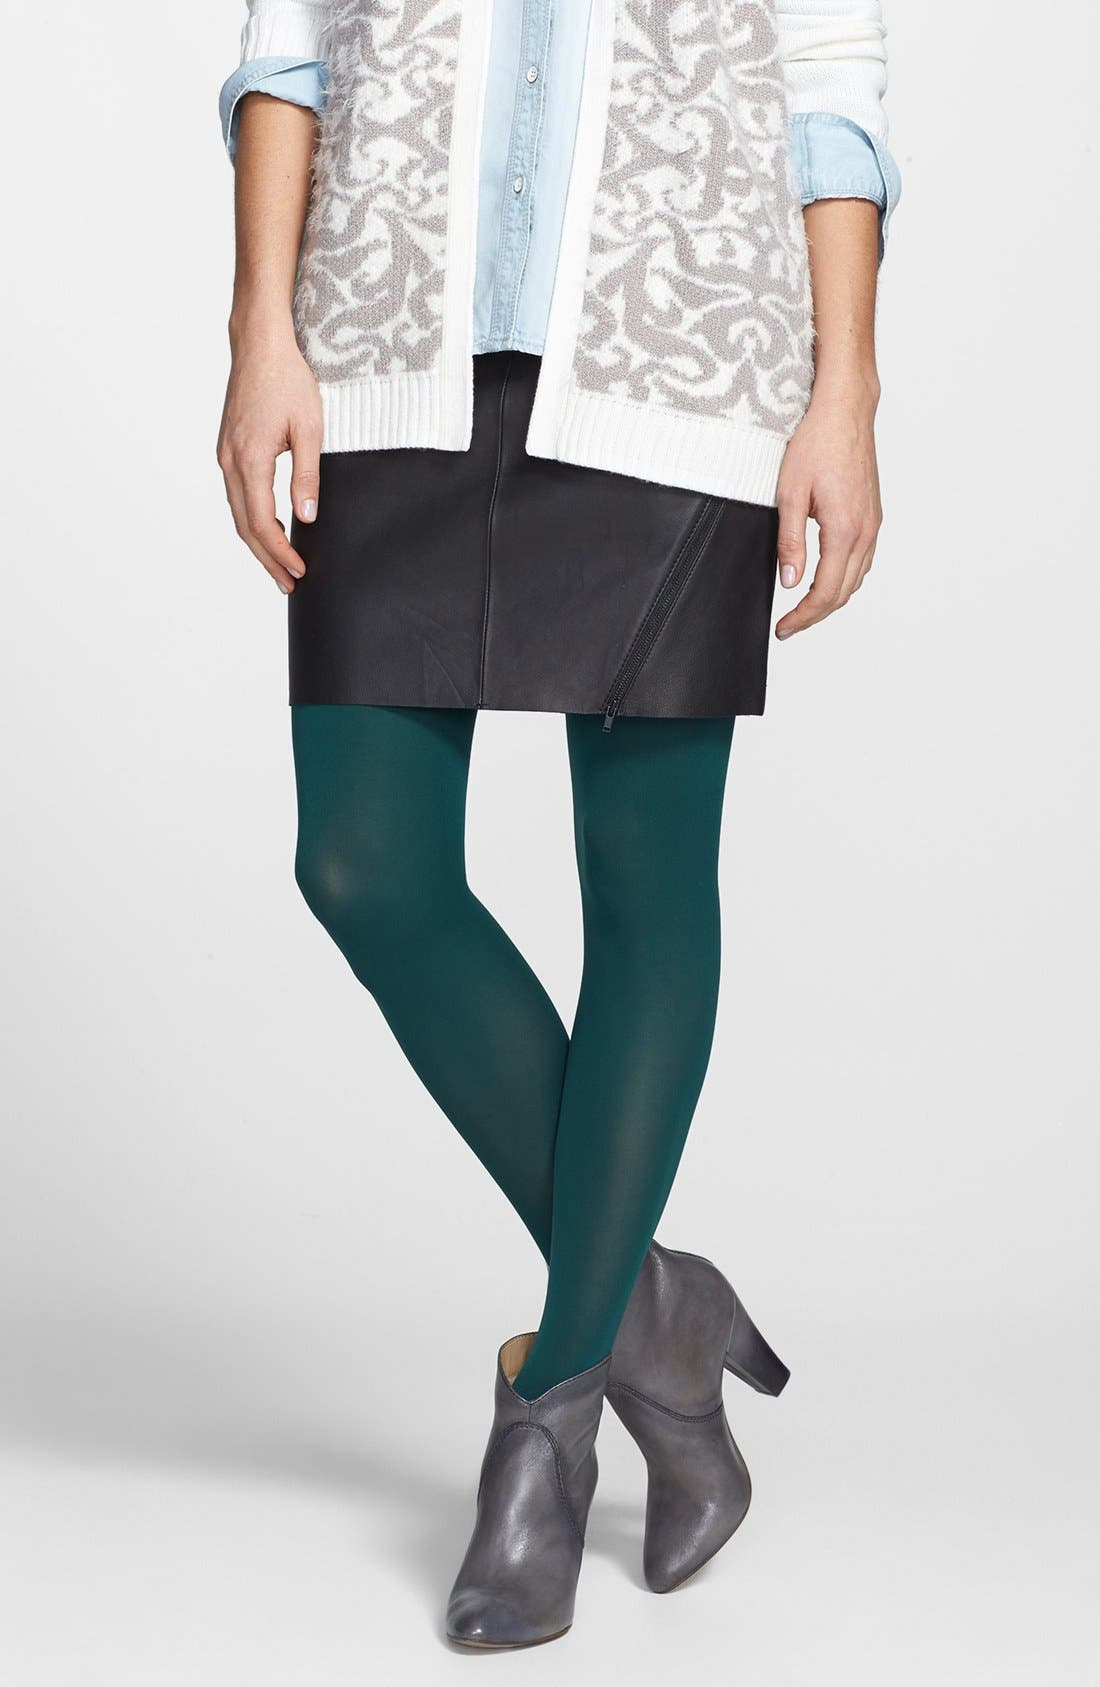 'Everyday' Opaque Tights,                             Main thumbnail 3, color,